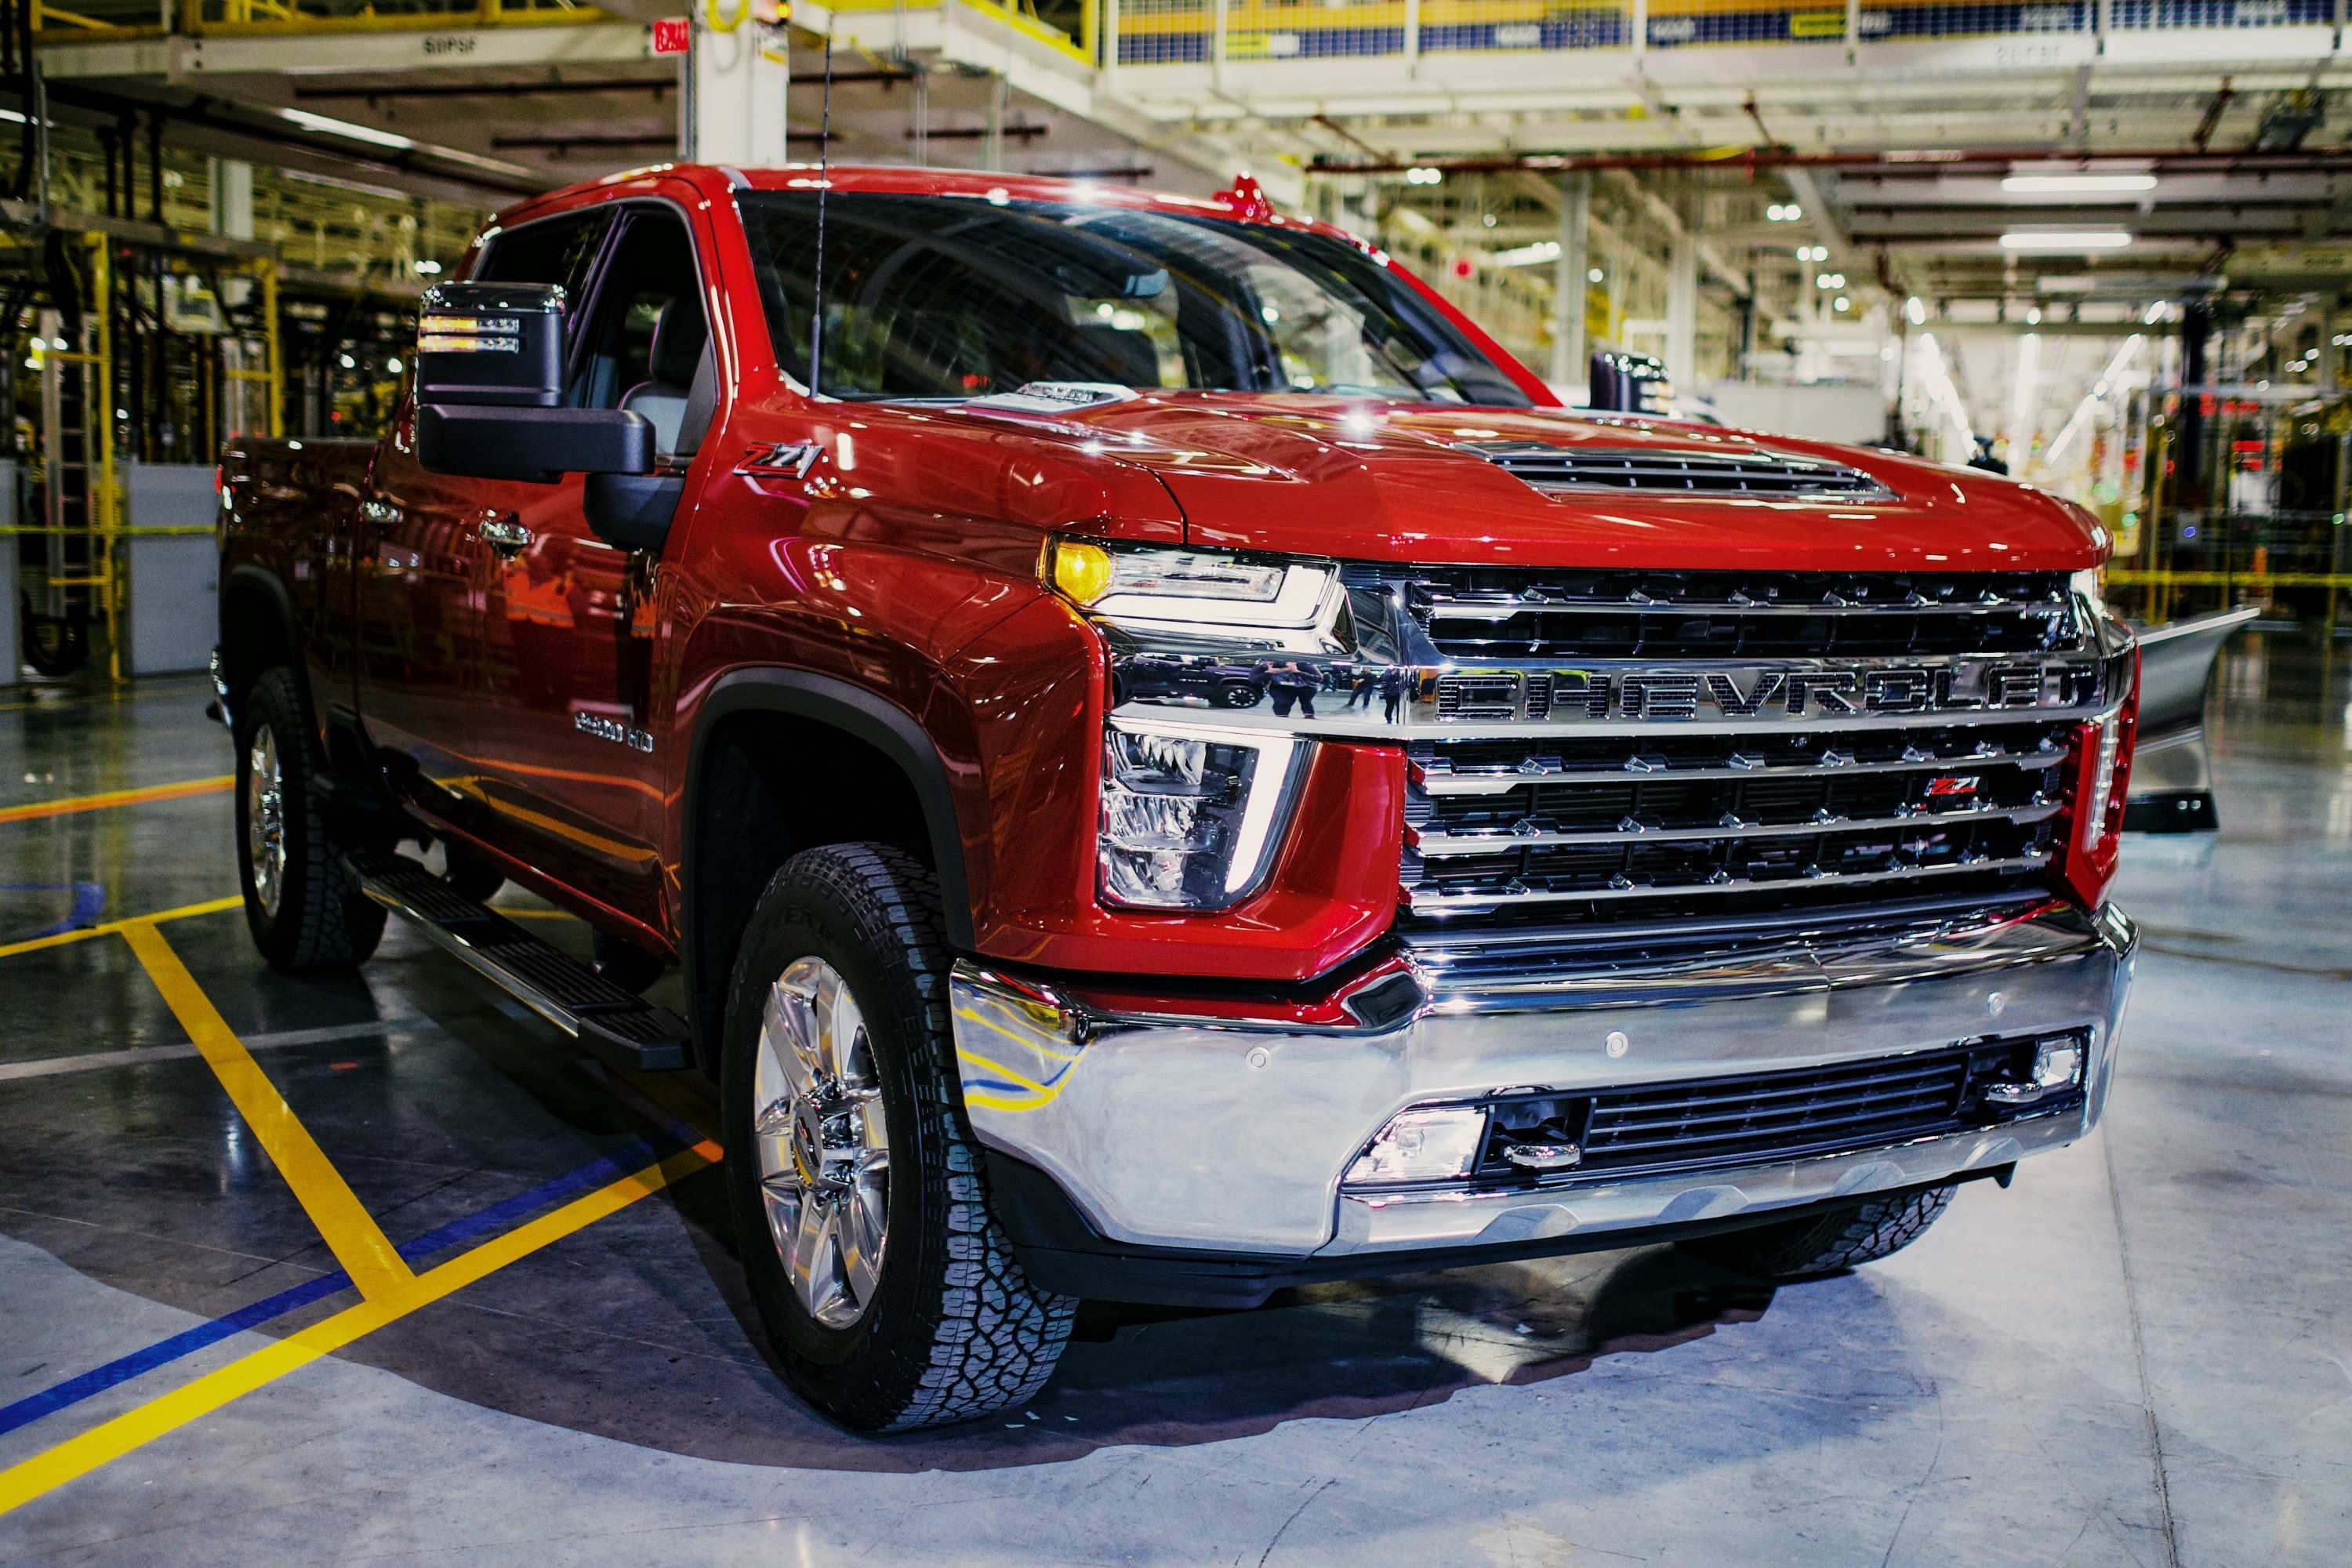 85 The Best Chevrolet Lineup For 2020 Research New